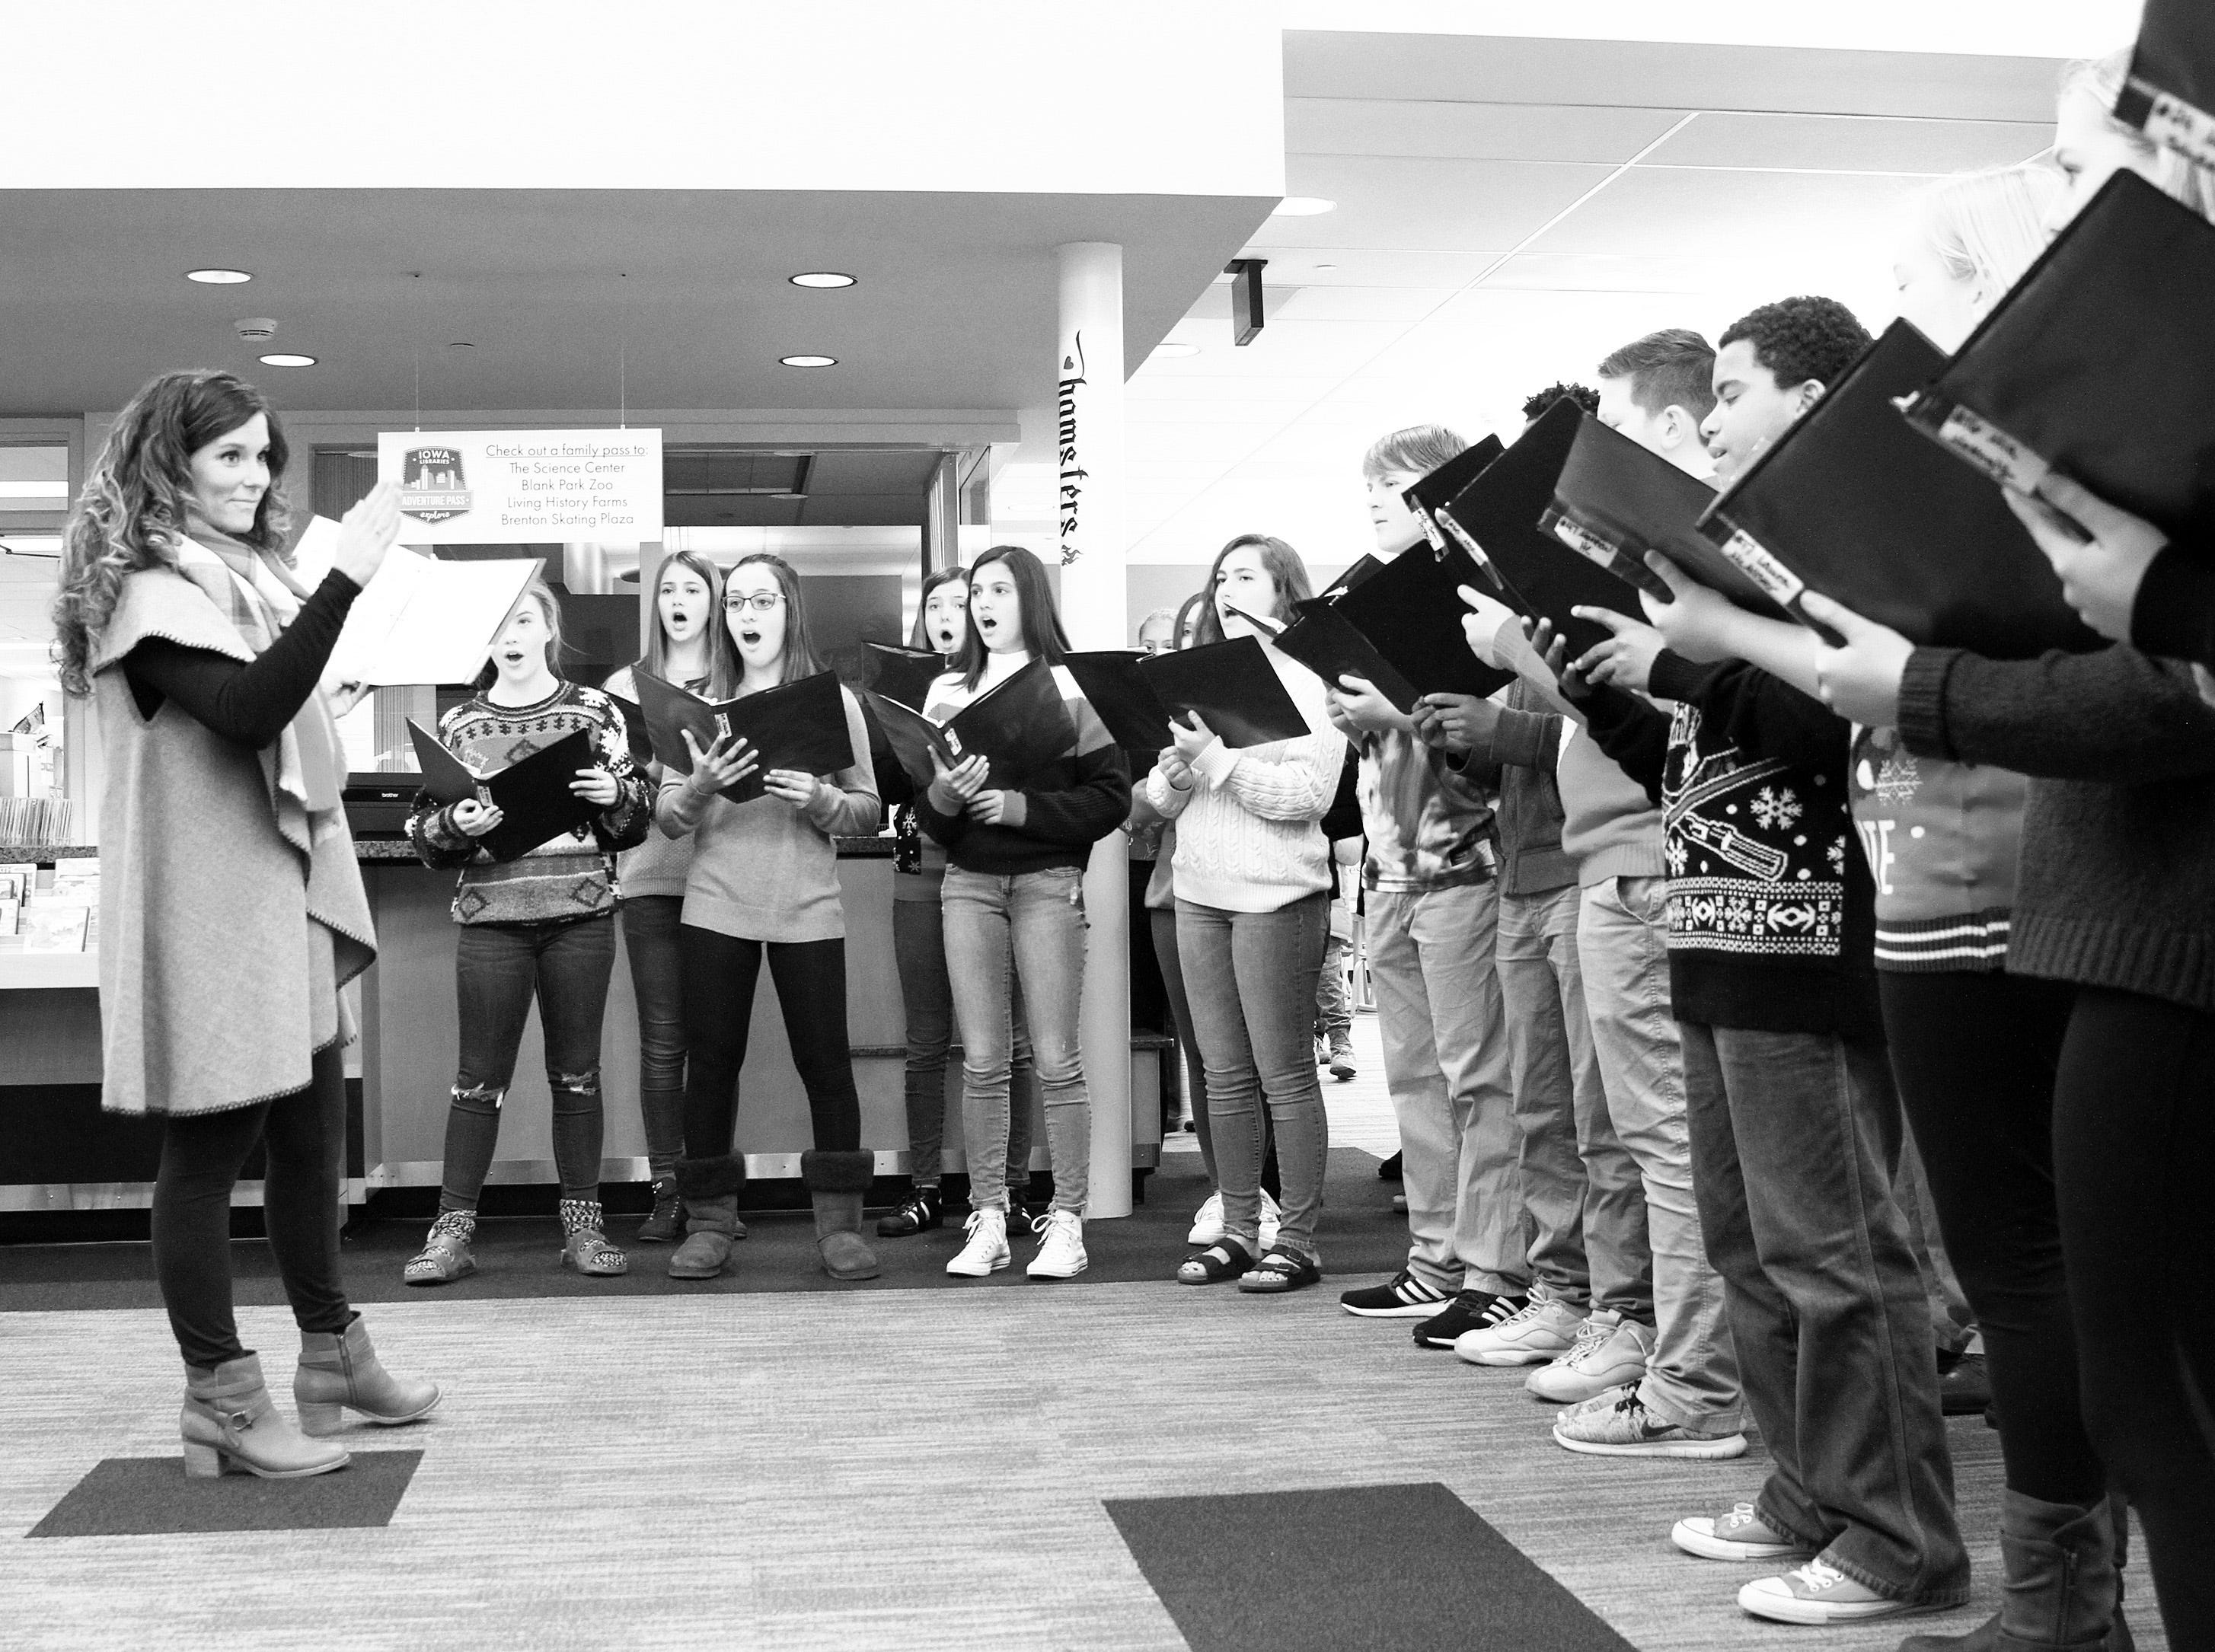 Vocal Music Teacher Laura Grimm directs the Johnston Middle School Ninth Grade Chamber Choir during Holidays in Johnston on Saturday, Dec. 1, 2018 at the Johnston Public Library featuring a gingerbread house contest, cookie decorating and Santa.